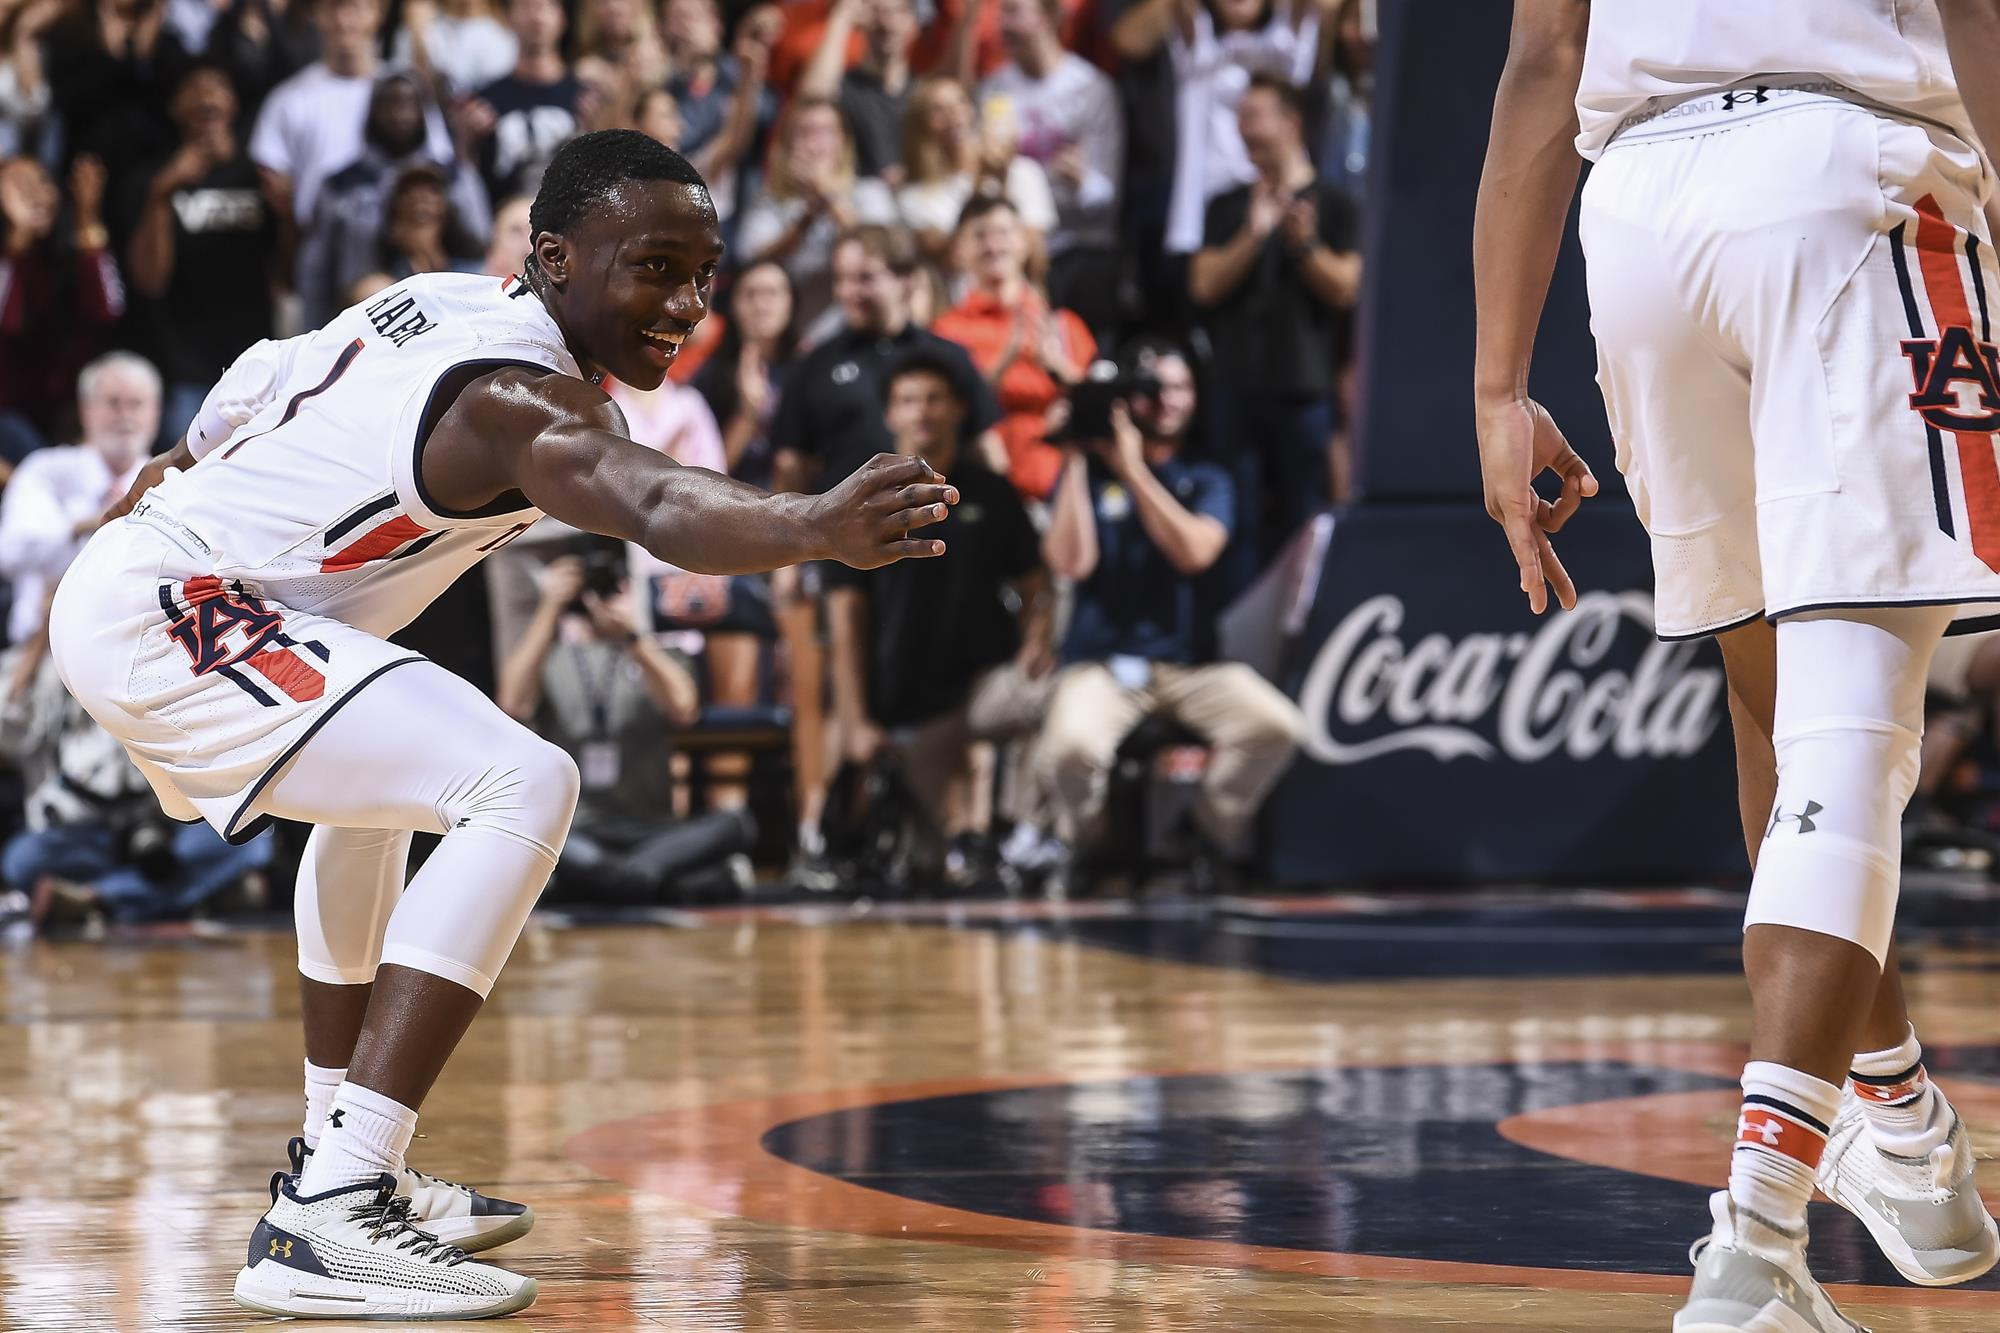 Auburn routs South Alabama 101-58 in